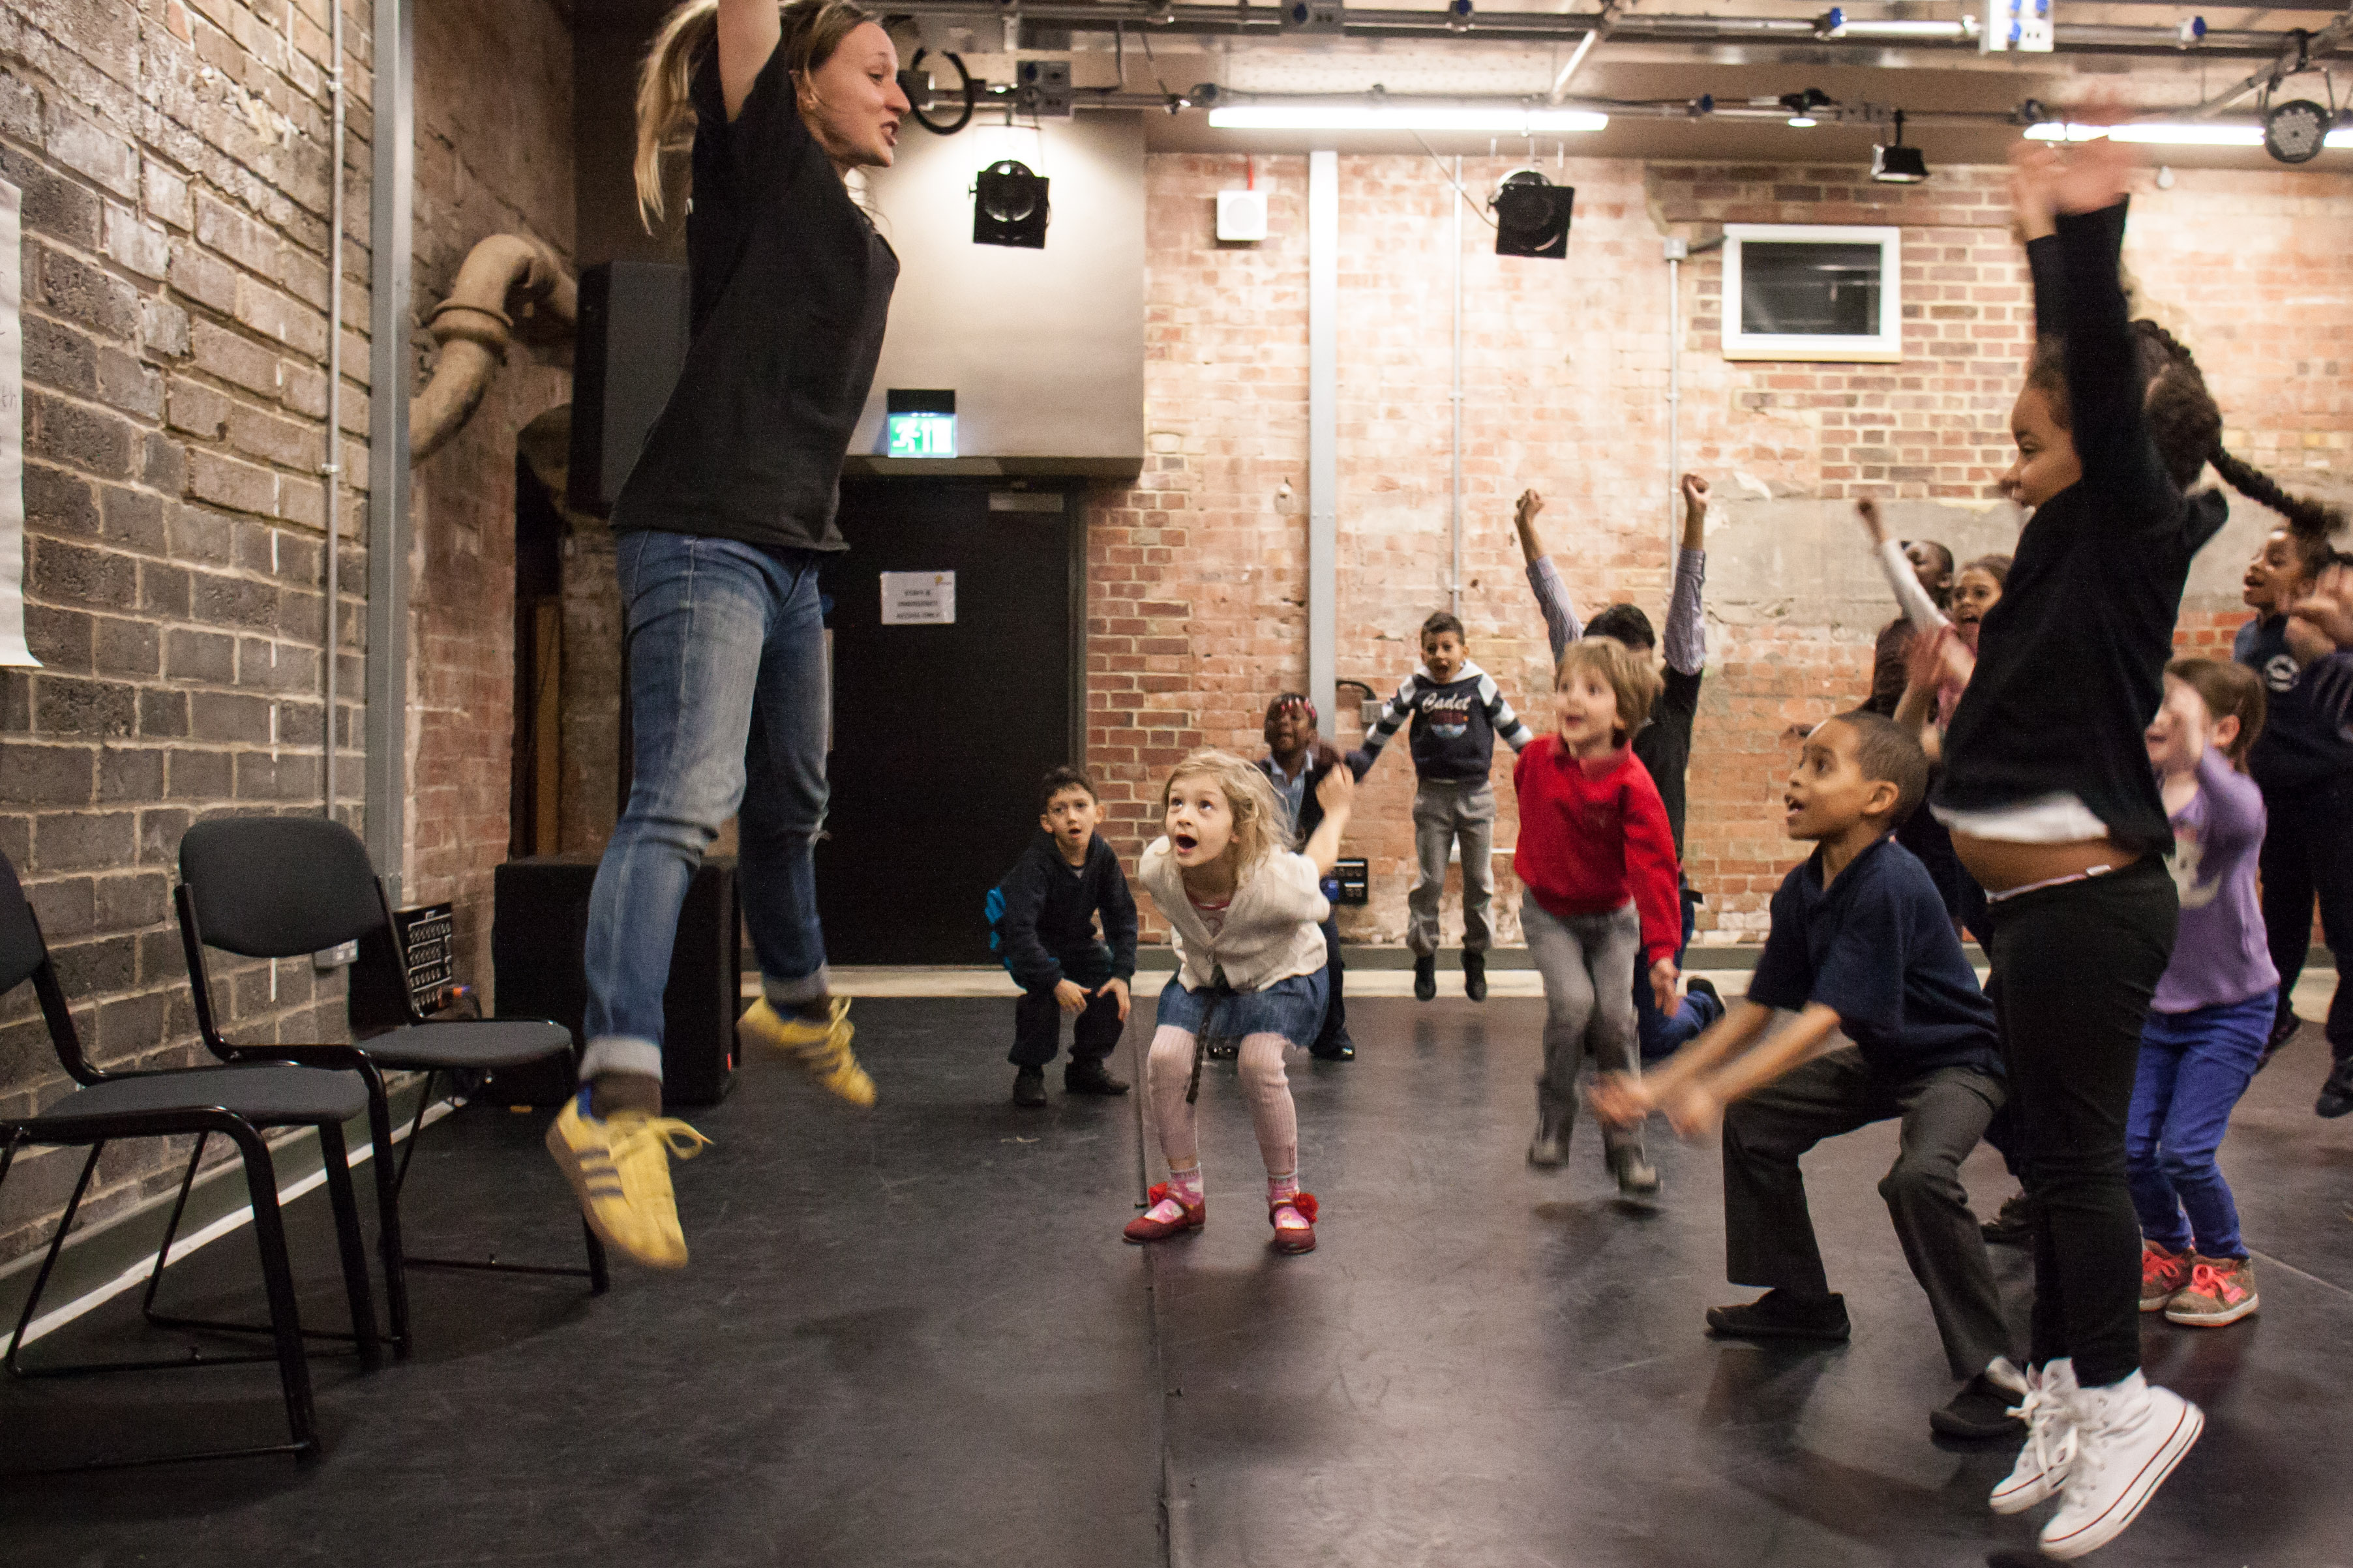 Woman at the front of the room jumping while children try to follow.